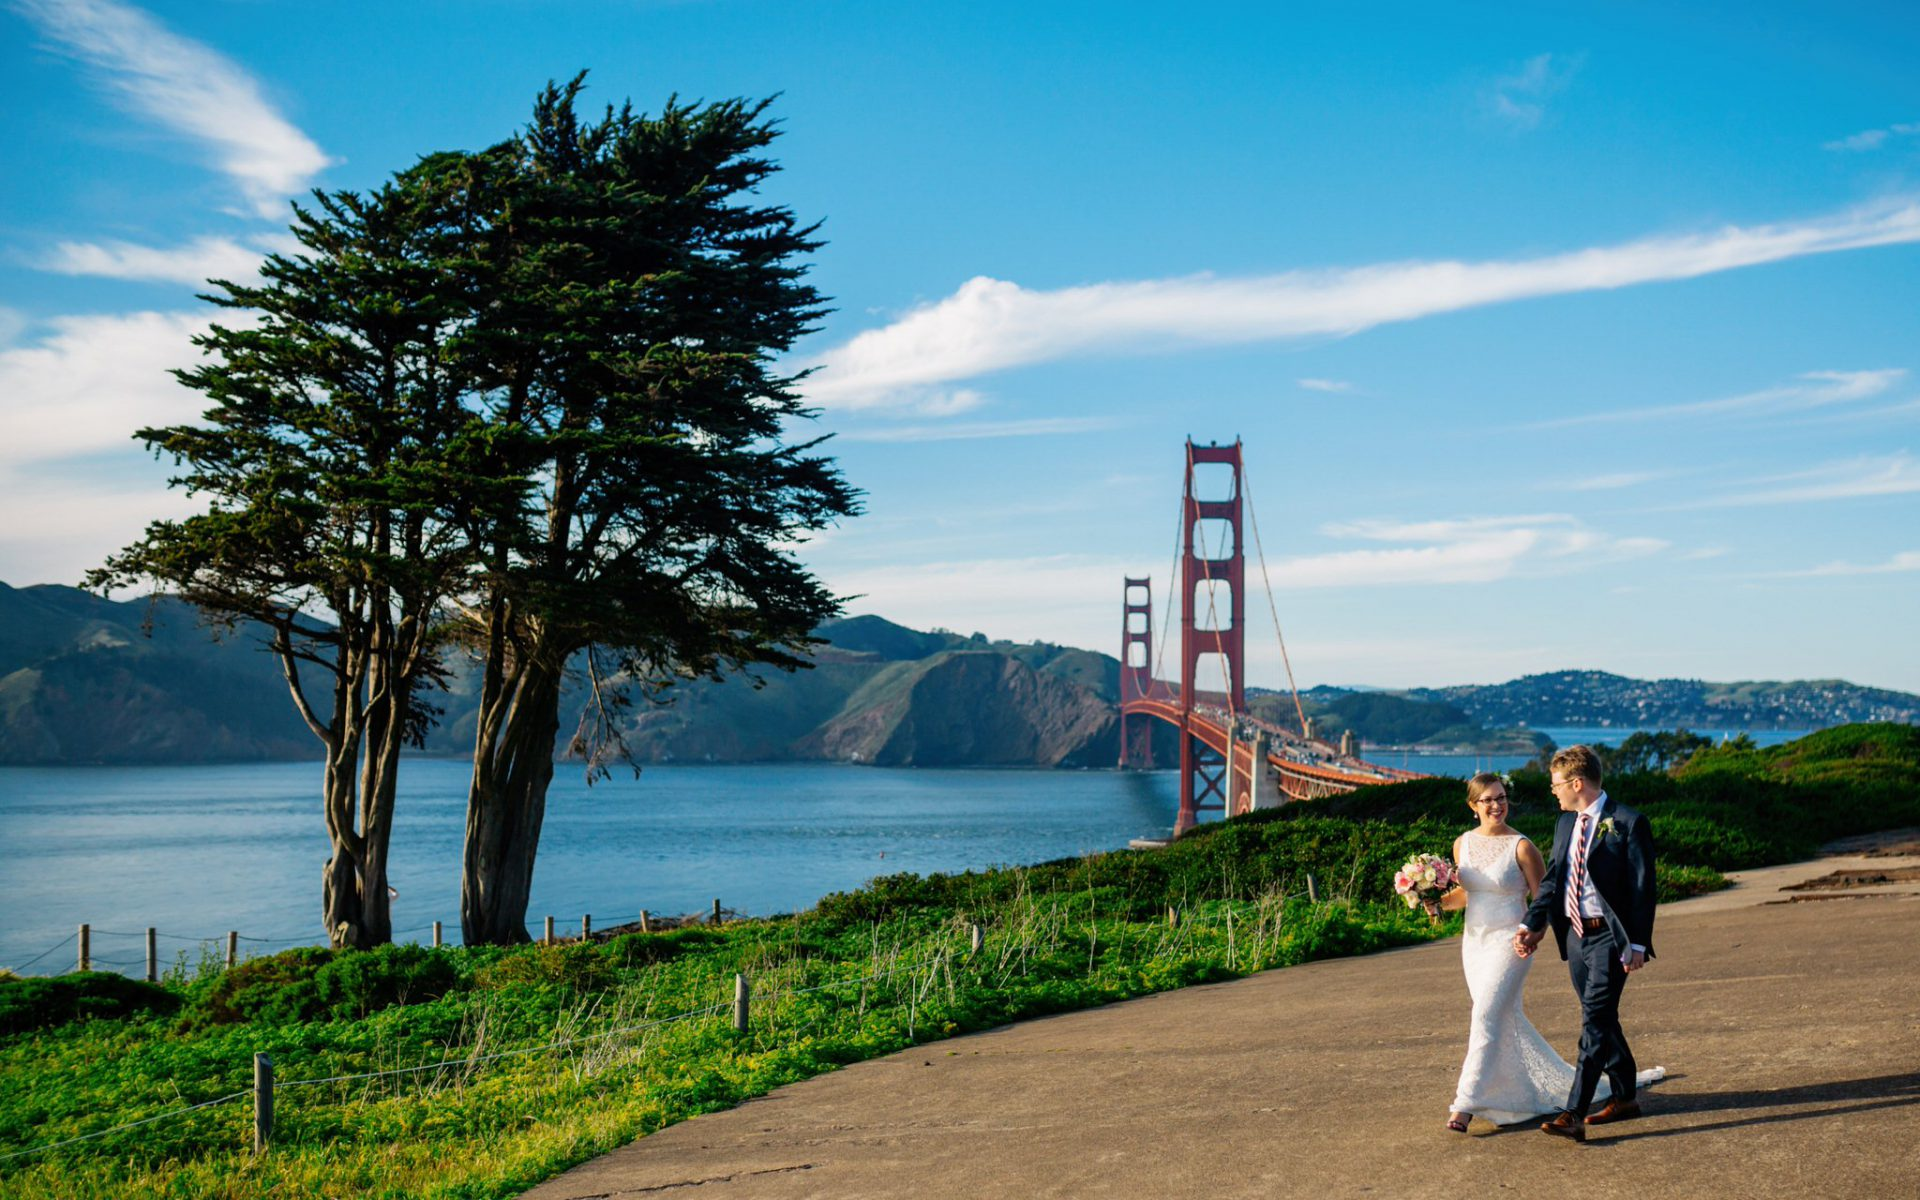 Trevor + Marina - Married in the Presidio!